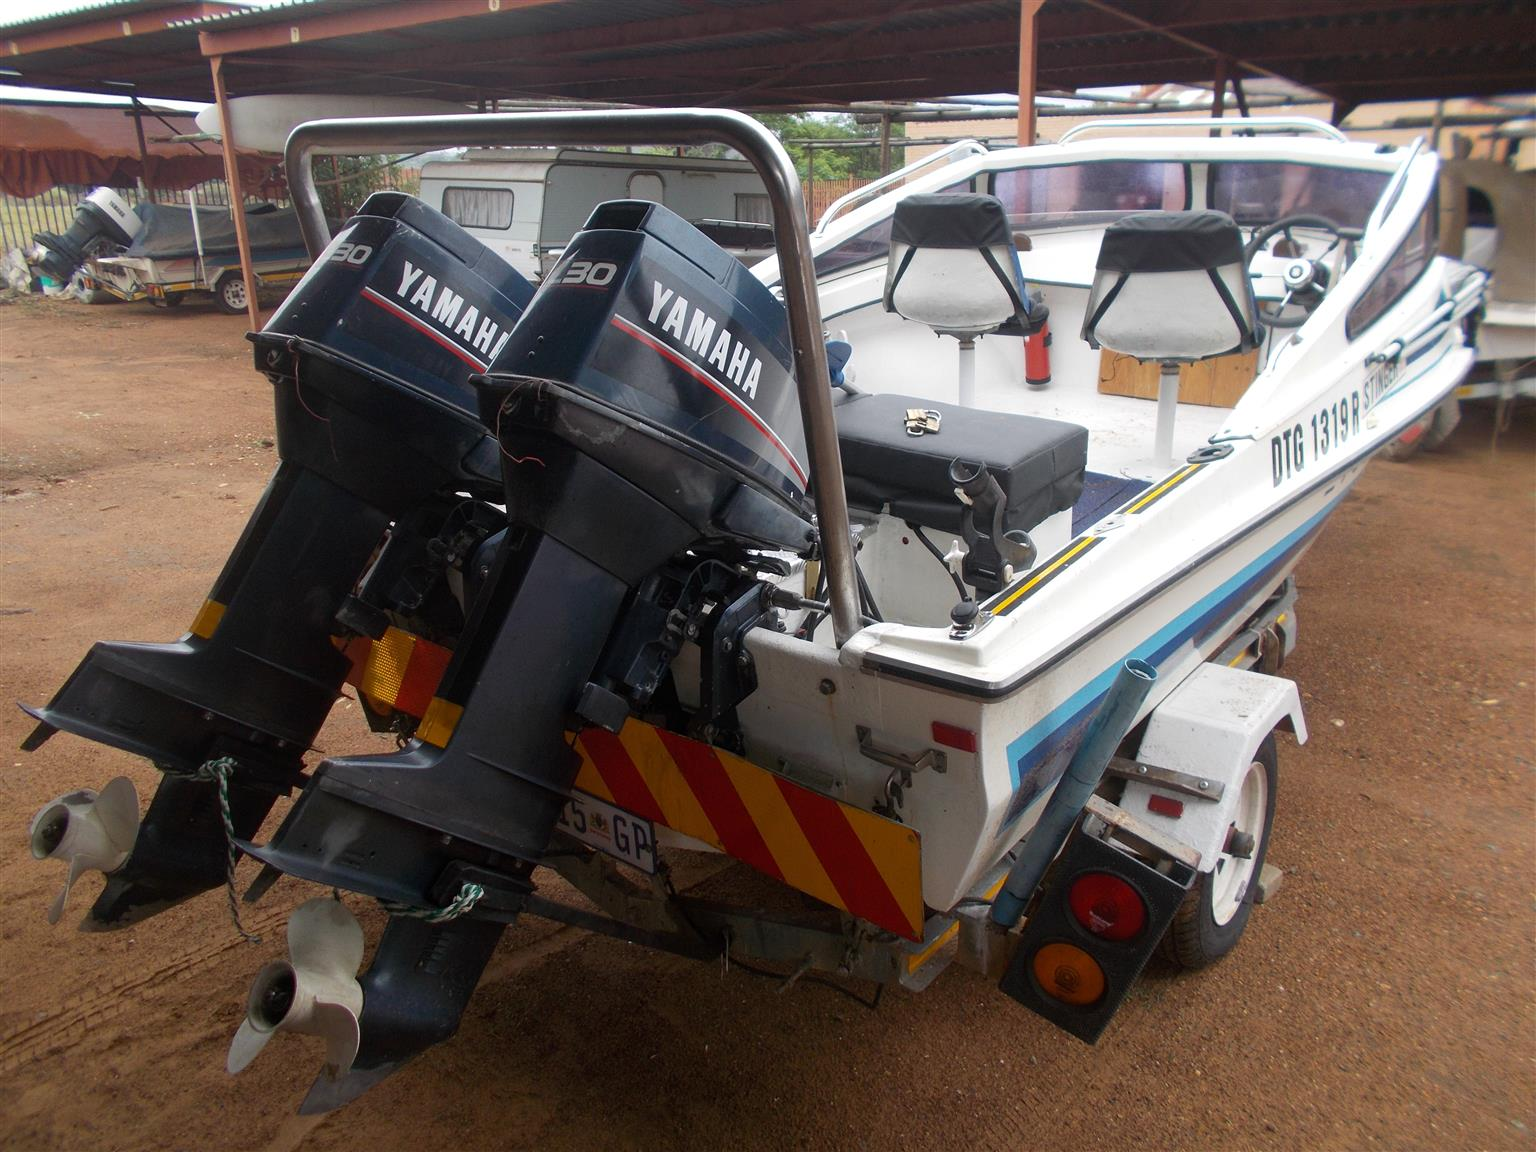 Excellent boat with two 30 HP Yamaha Engines